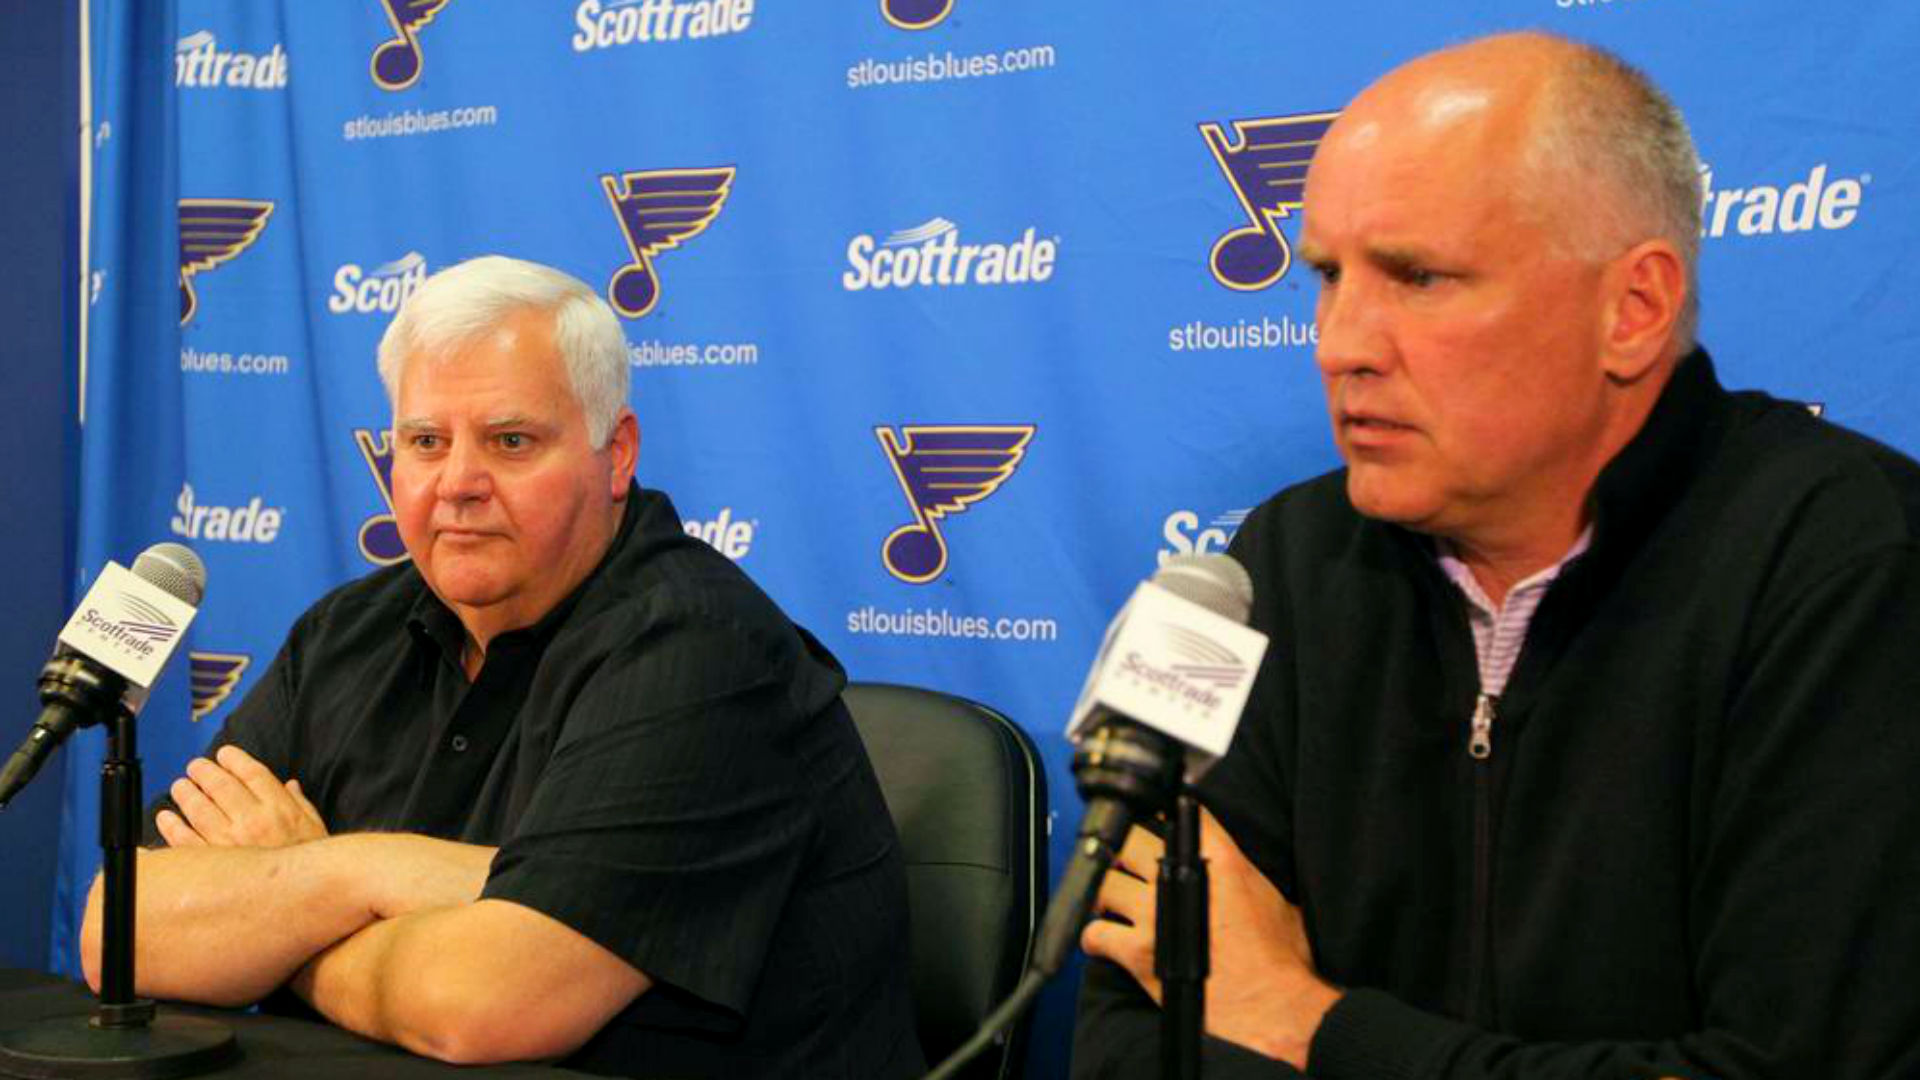 Ken Hitchcock gets one more chance to end Blues' playoff failures